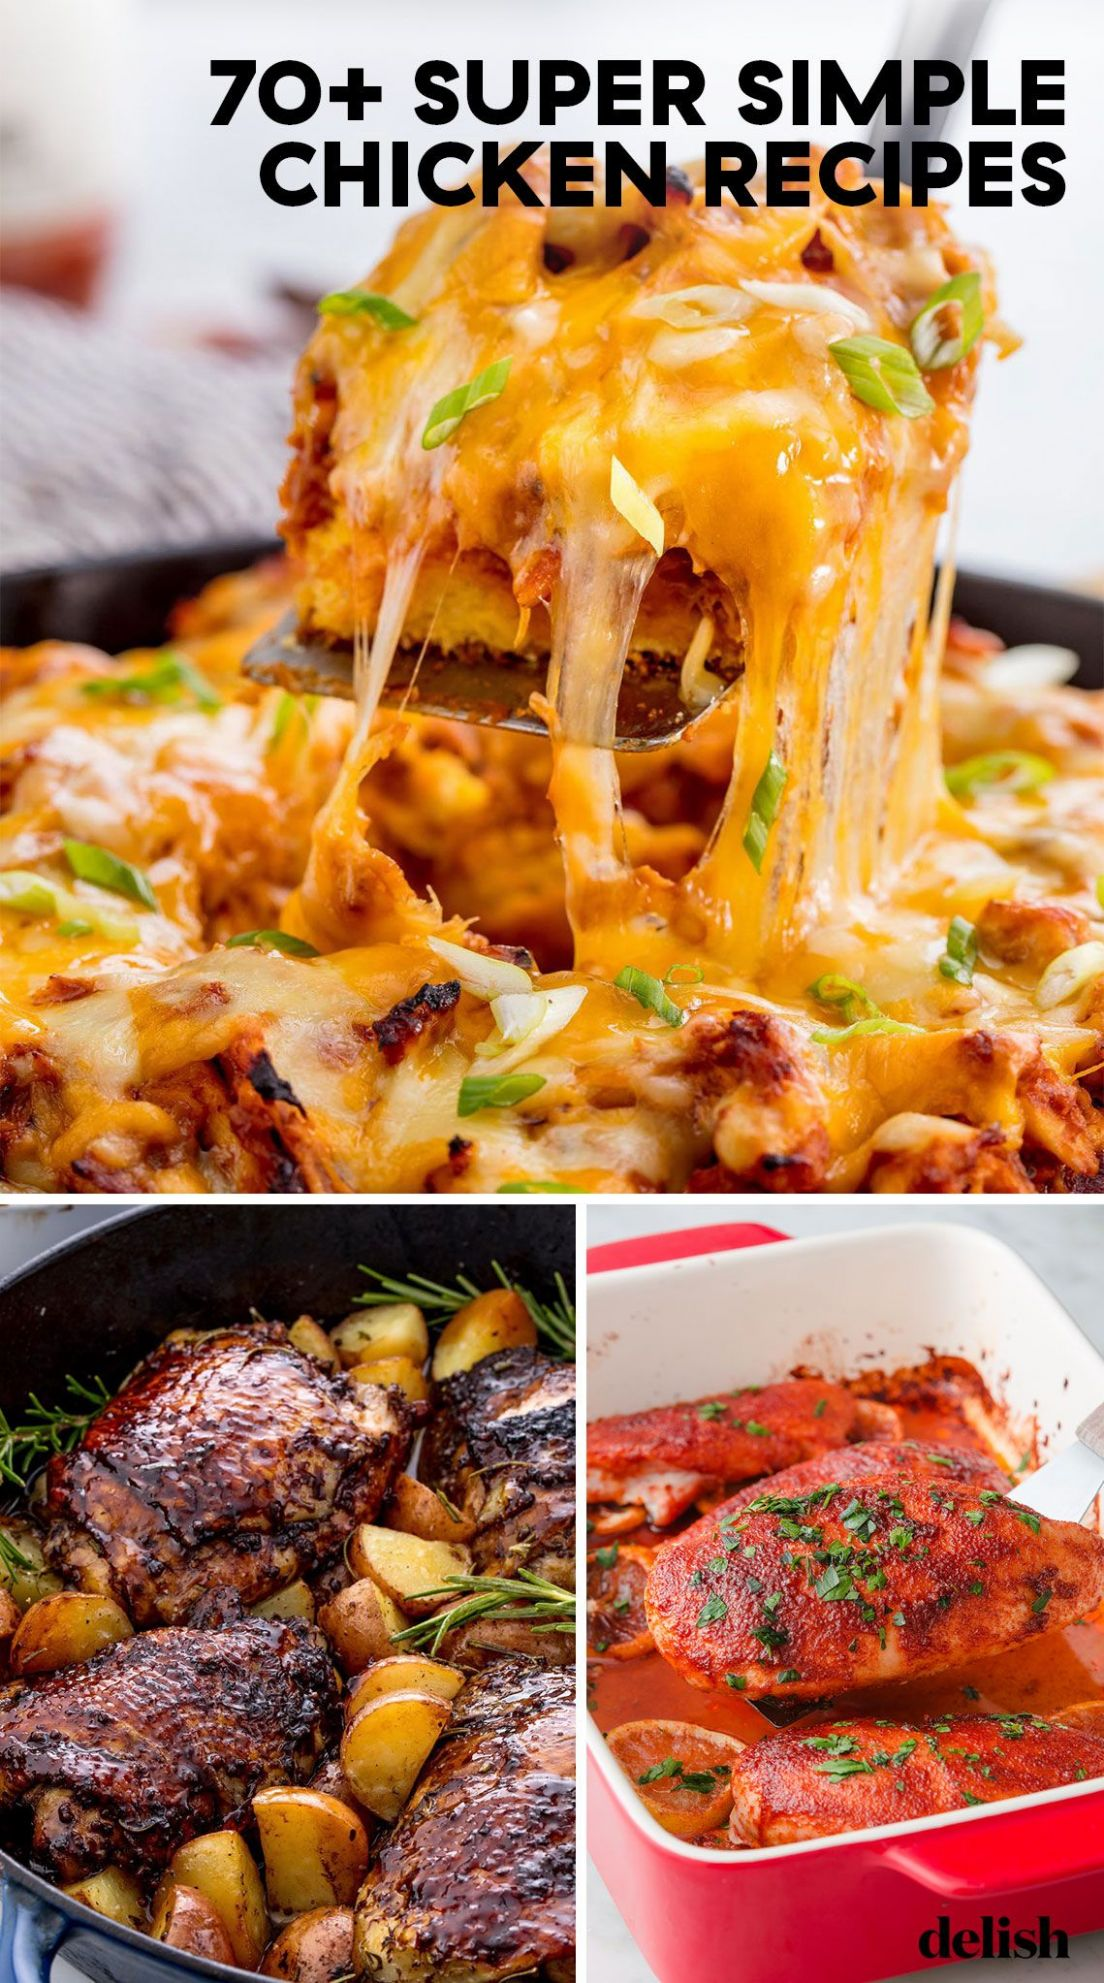 9+ Easy Chicken Dinner Recipes - Simple Ideas for Chicken Dishes